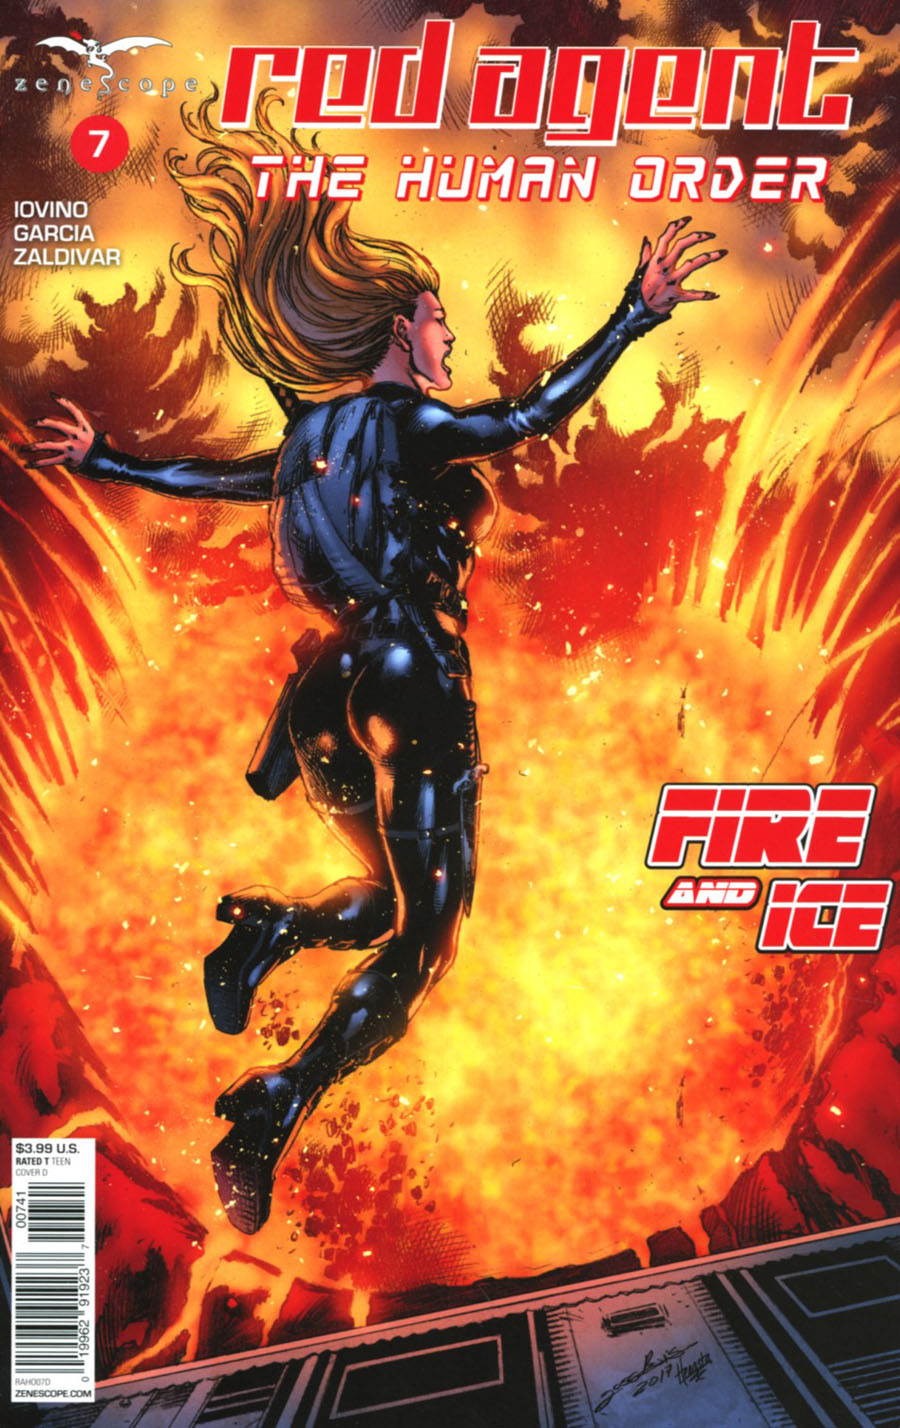 Grimm Fairy Tales Presents Red Agent Human Order #7 Cover D Jose Luis